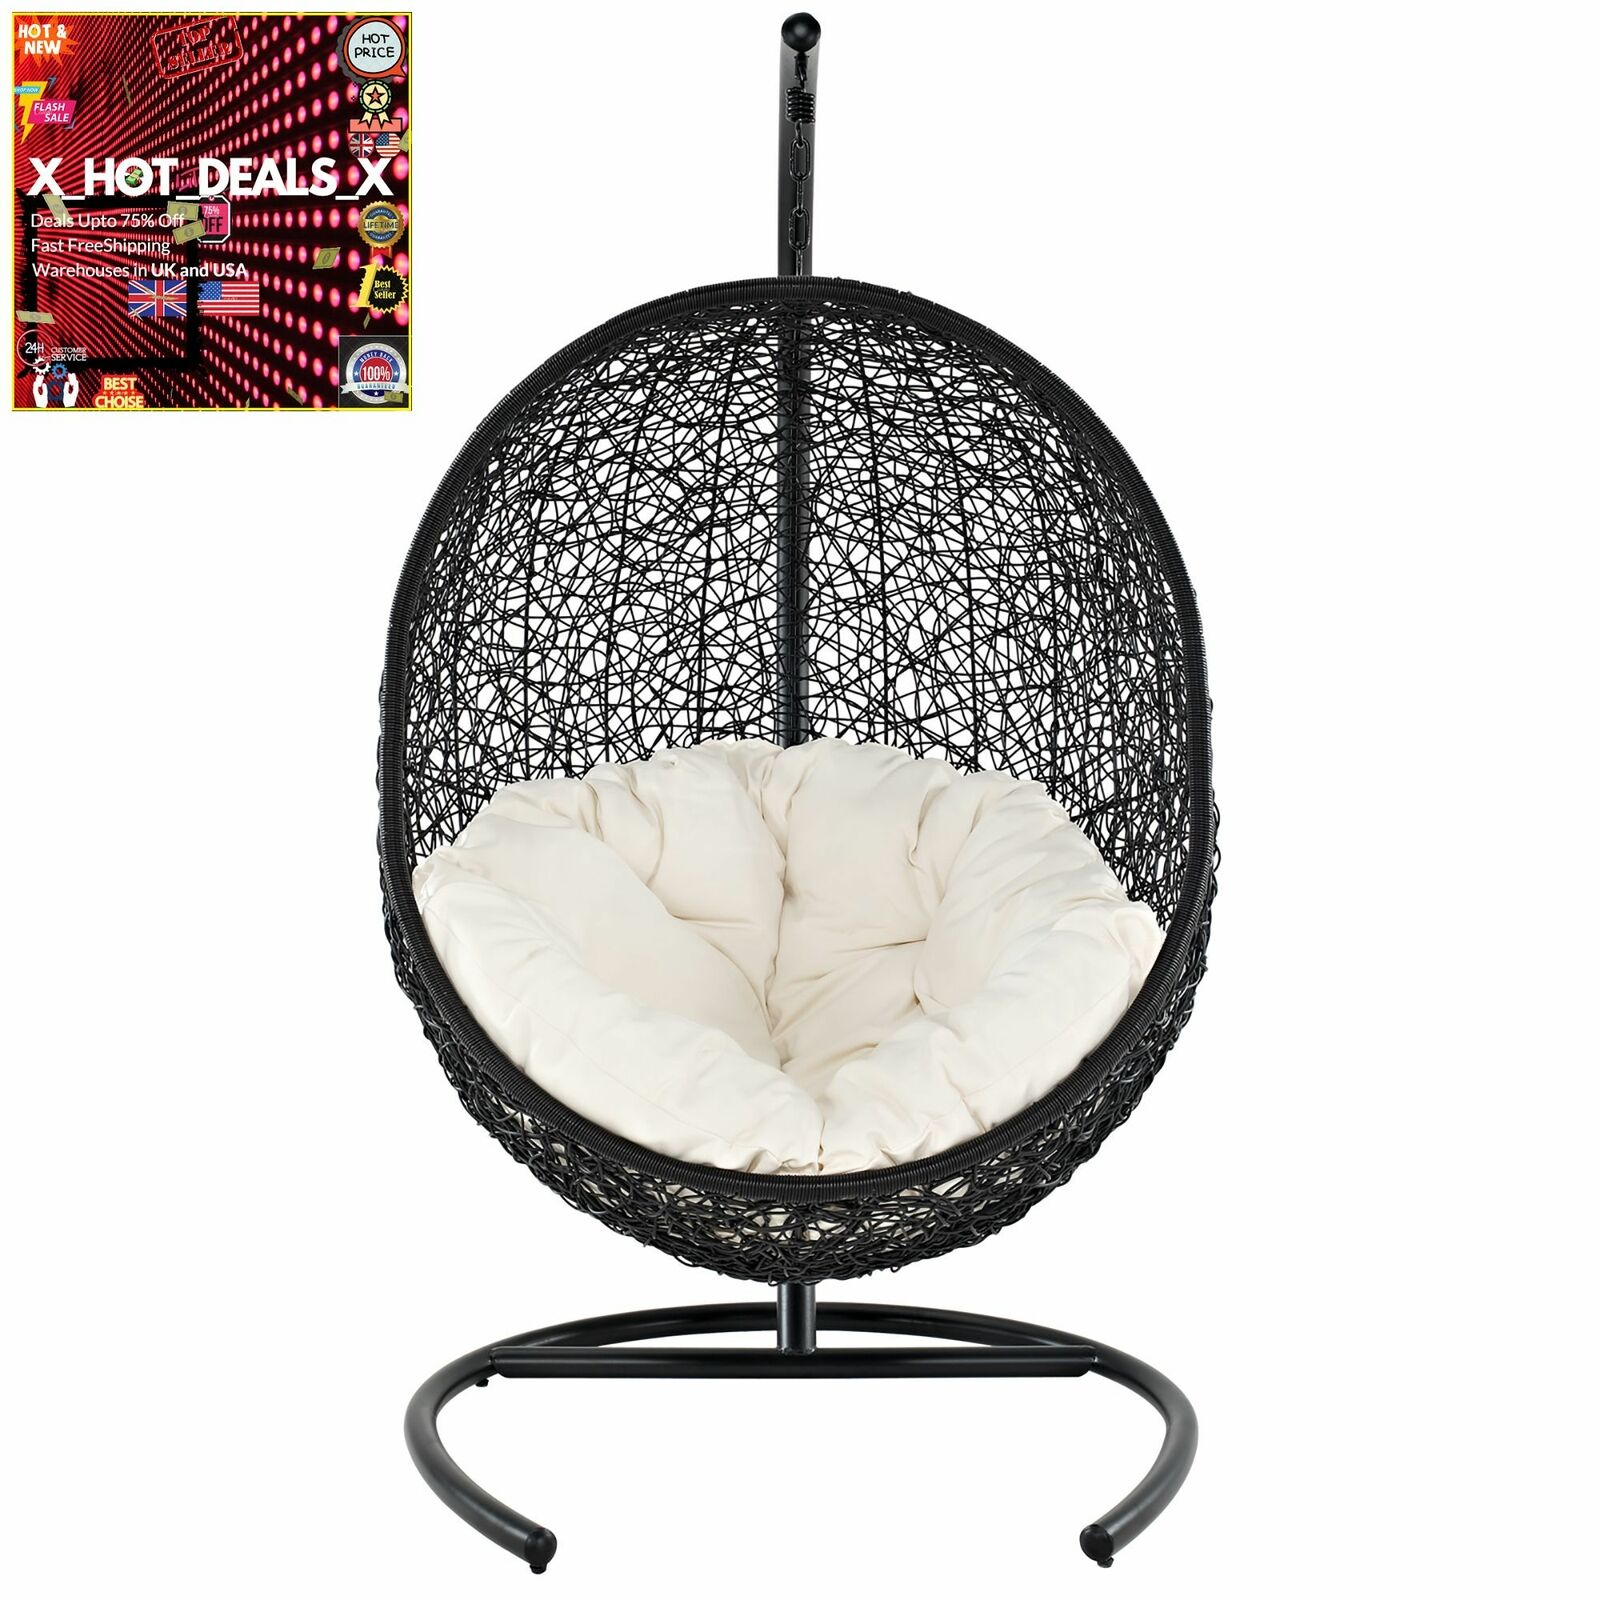 New Outdoor Patio Wicker Rattan Hanging Swing Lounge Chair With Stand Us For Sale Online